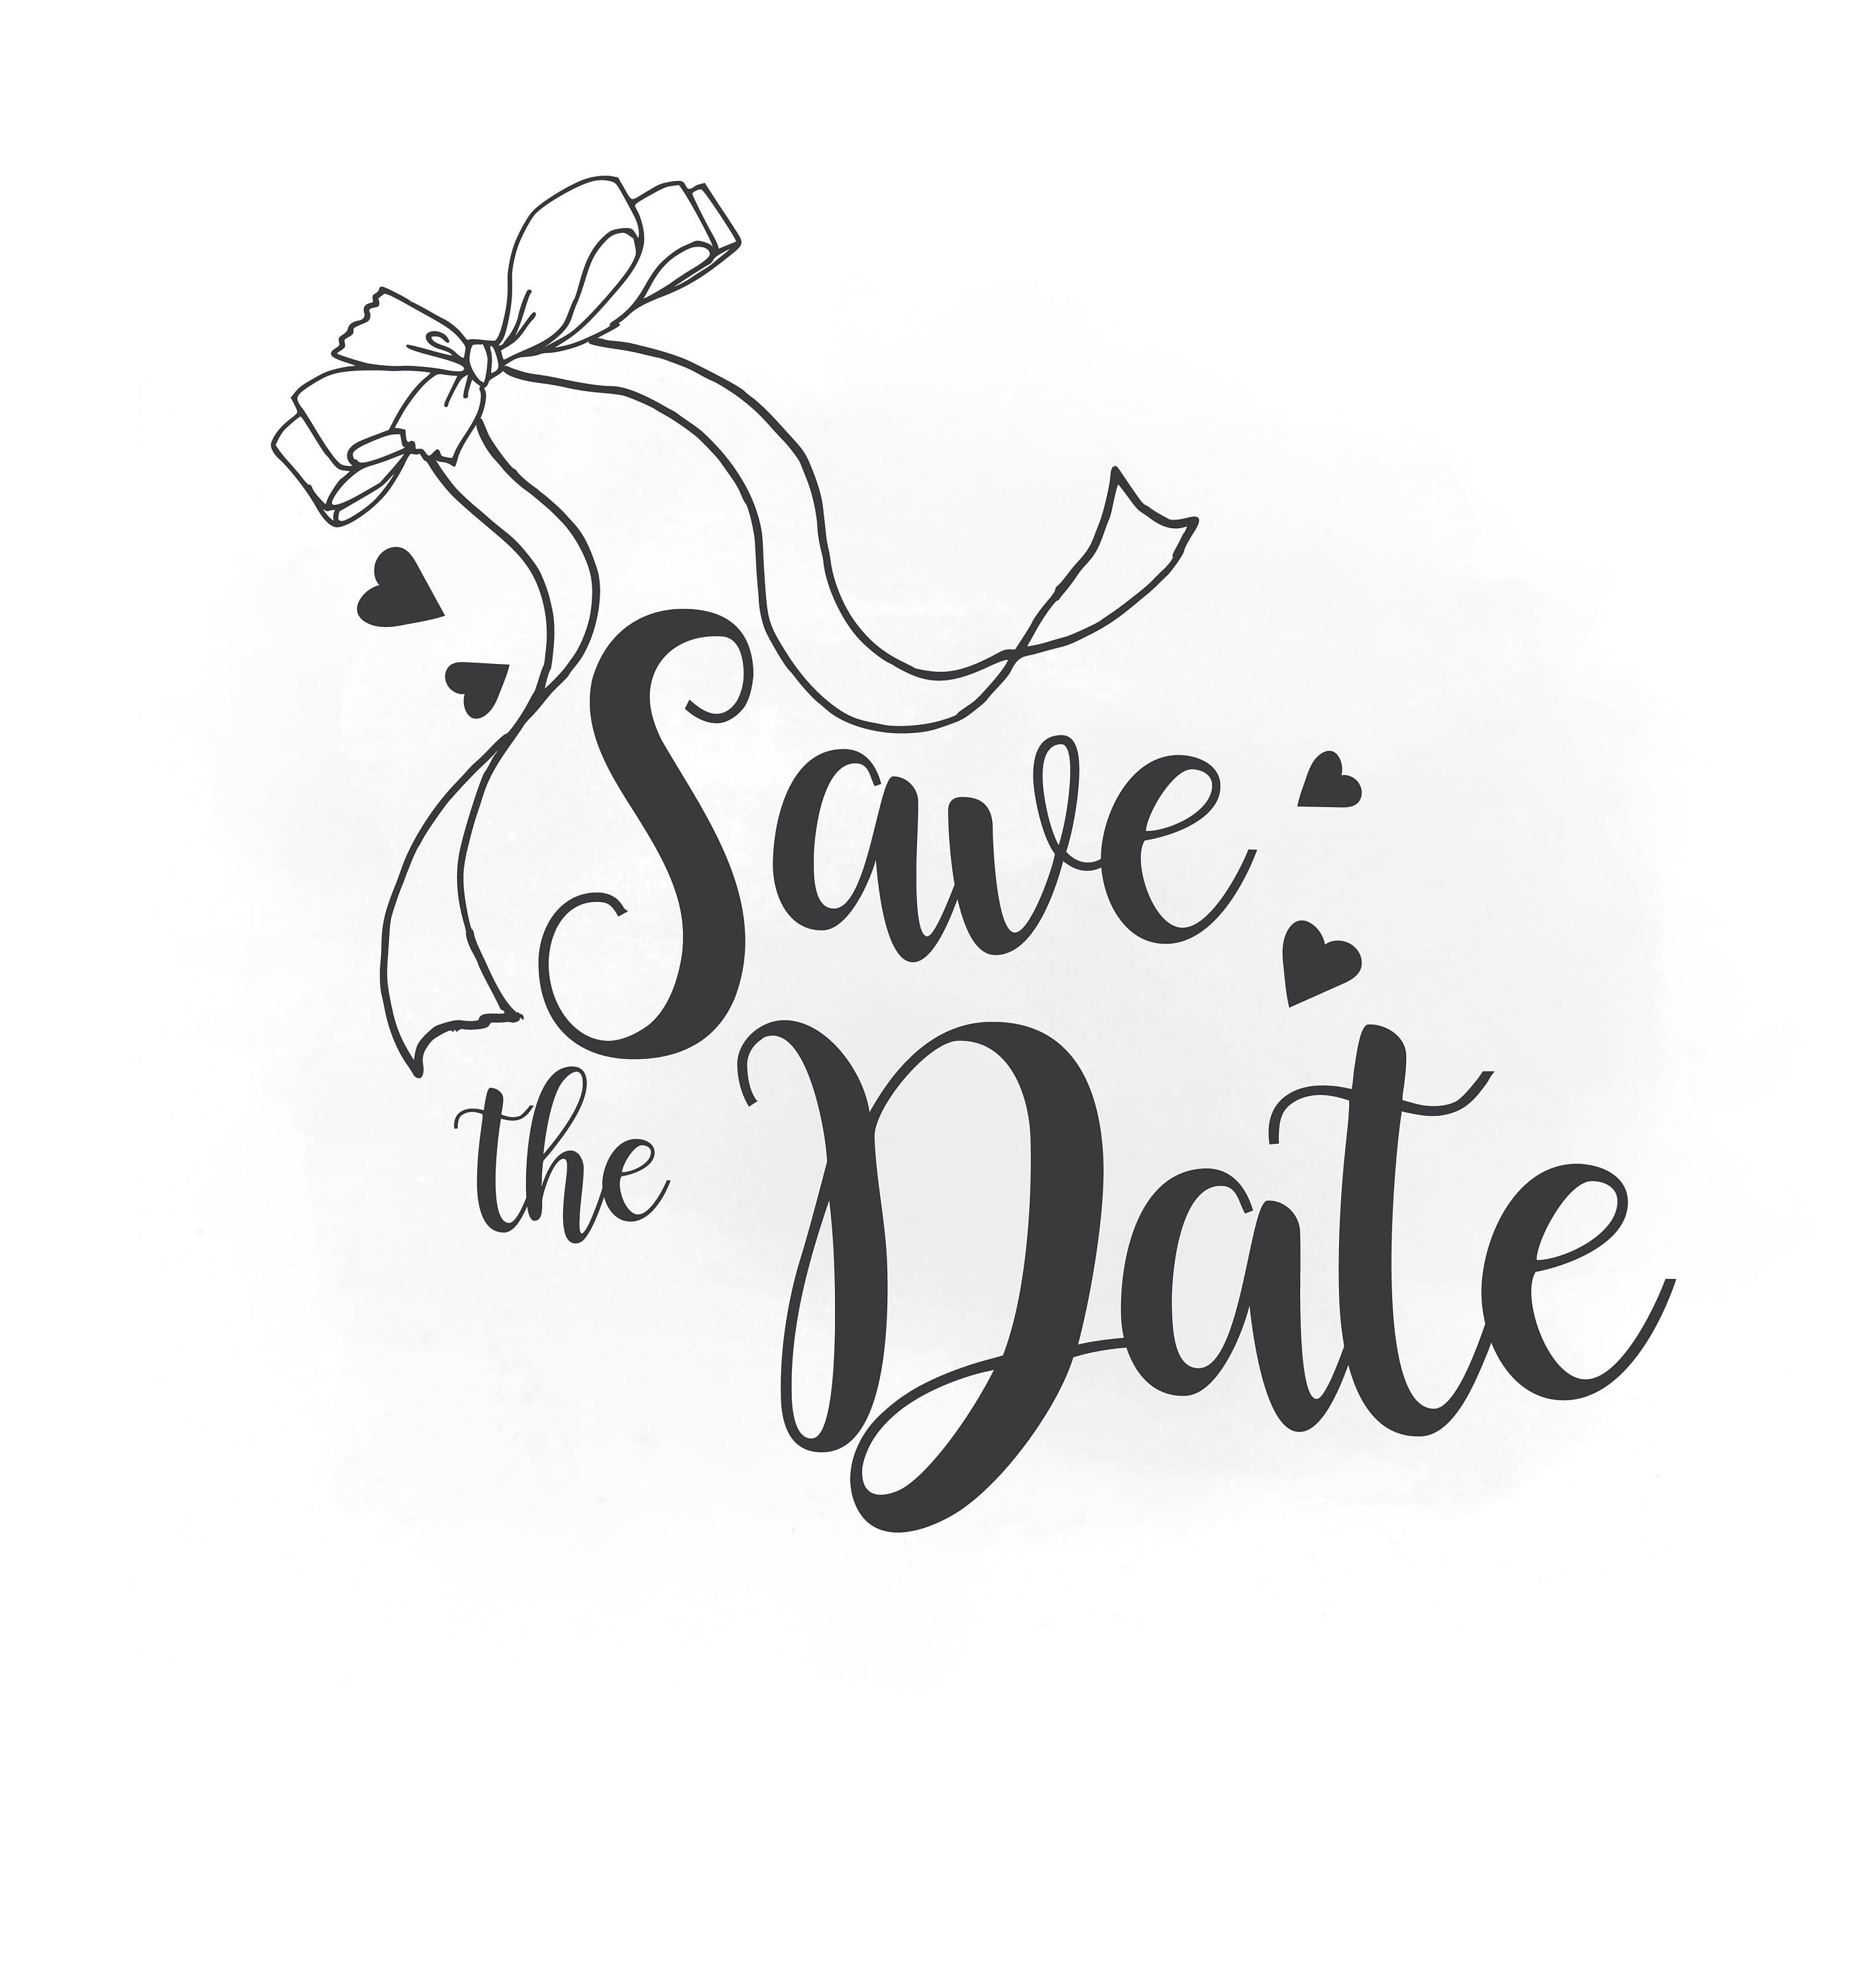 Save The Date Pictures To Pin On Pinterest Pins2pin Save The Date Pictures Save The Date Wedding Saving